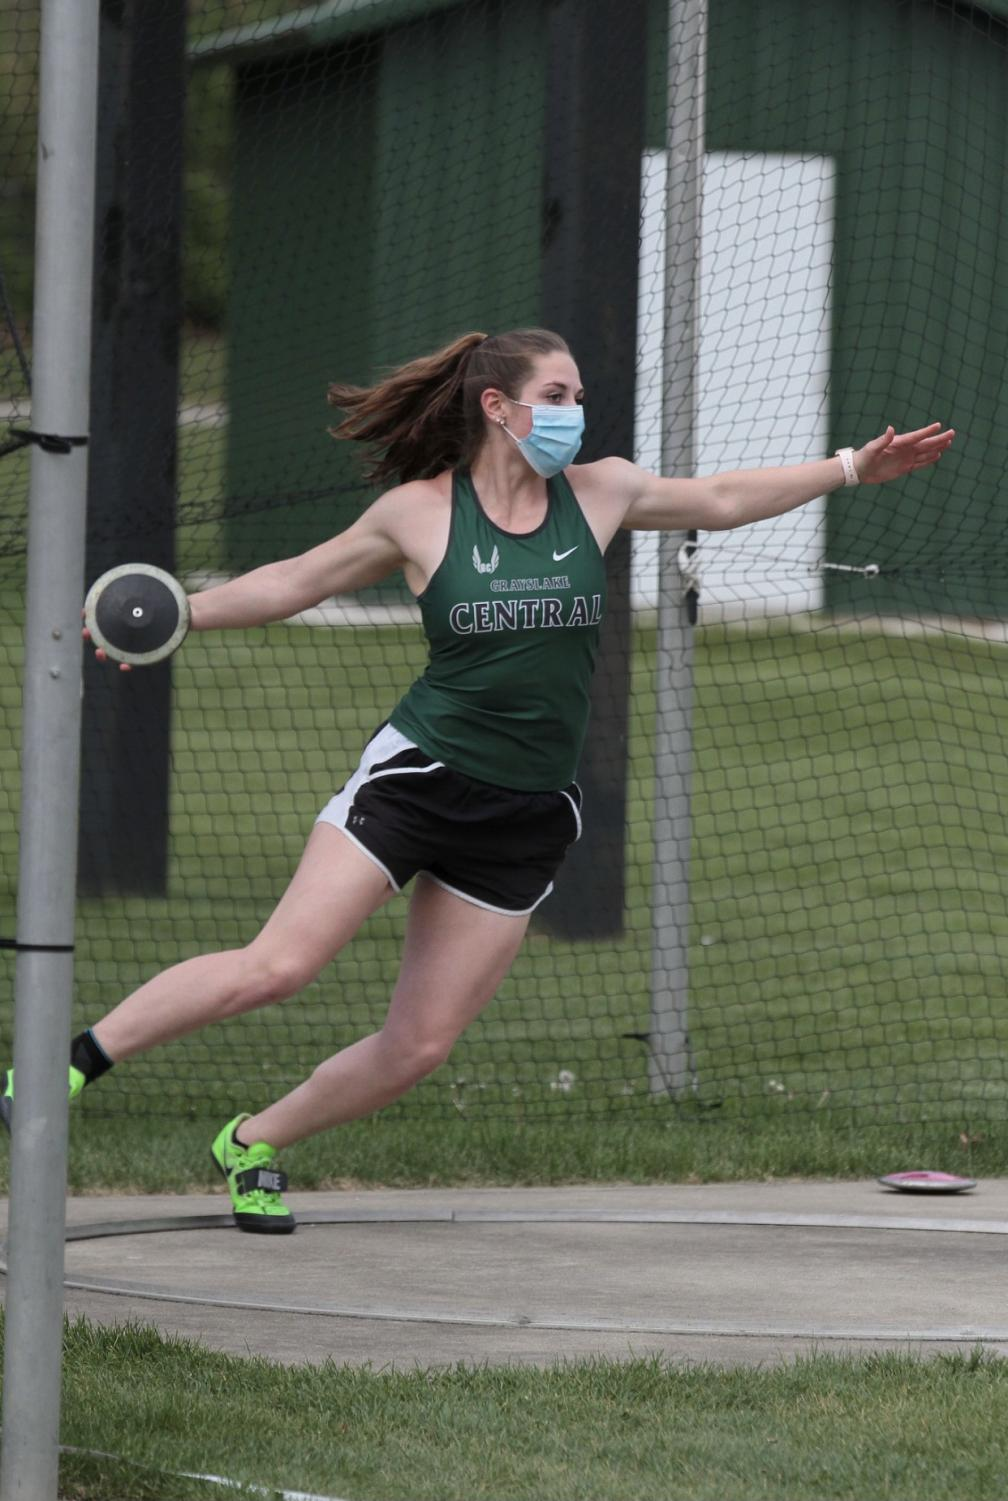 Julia Reglewski performing a discus throw. She set a new record with a throw of 138 feet and 2 inches.